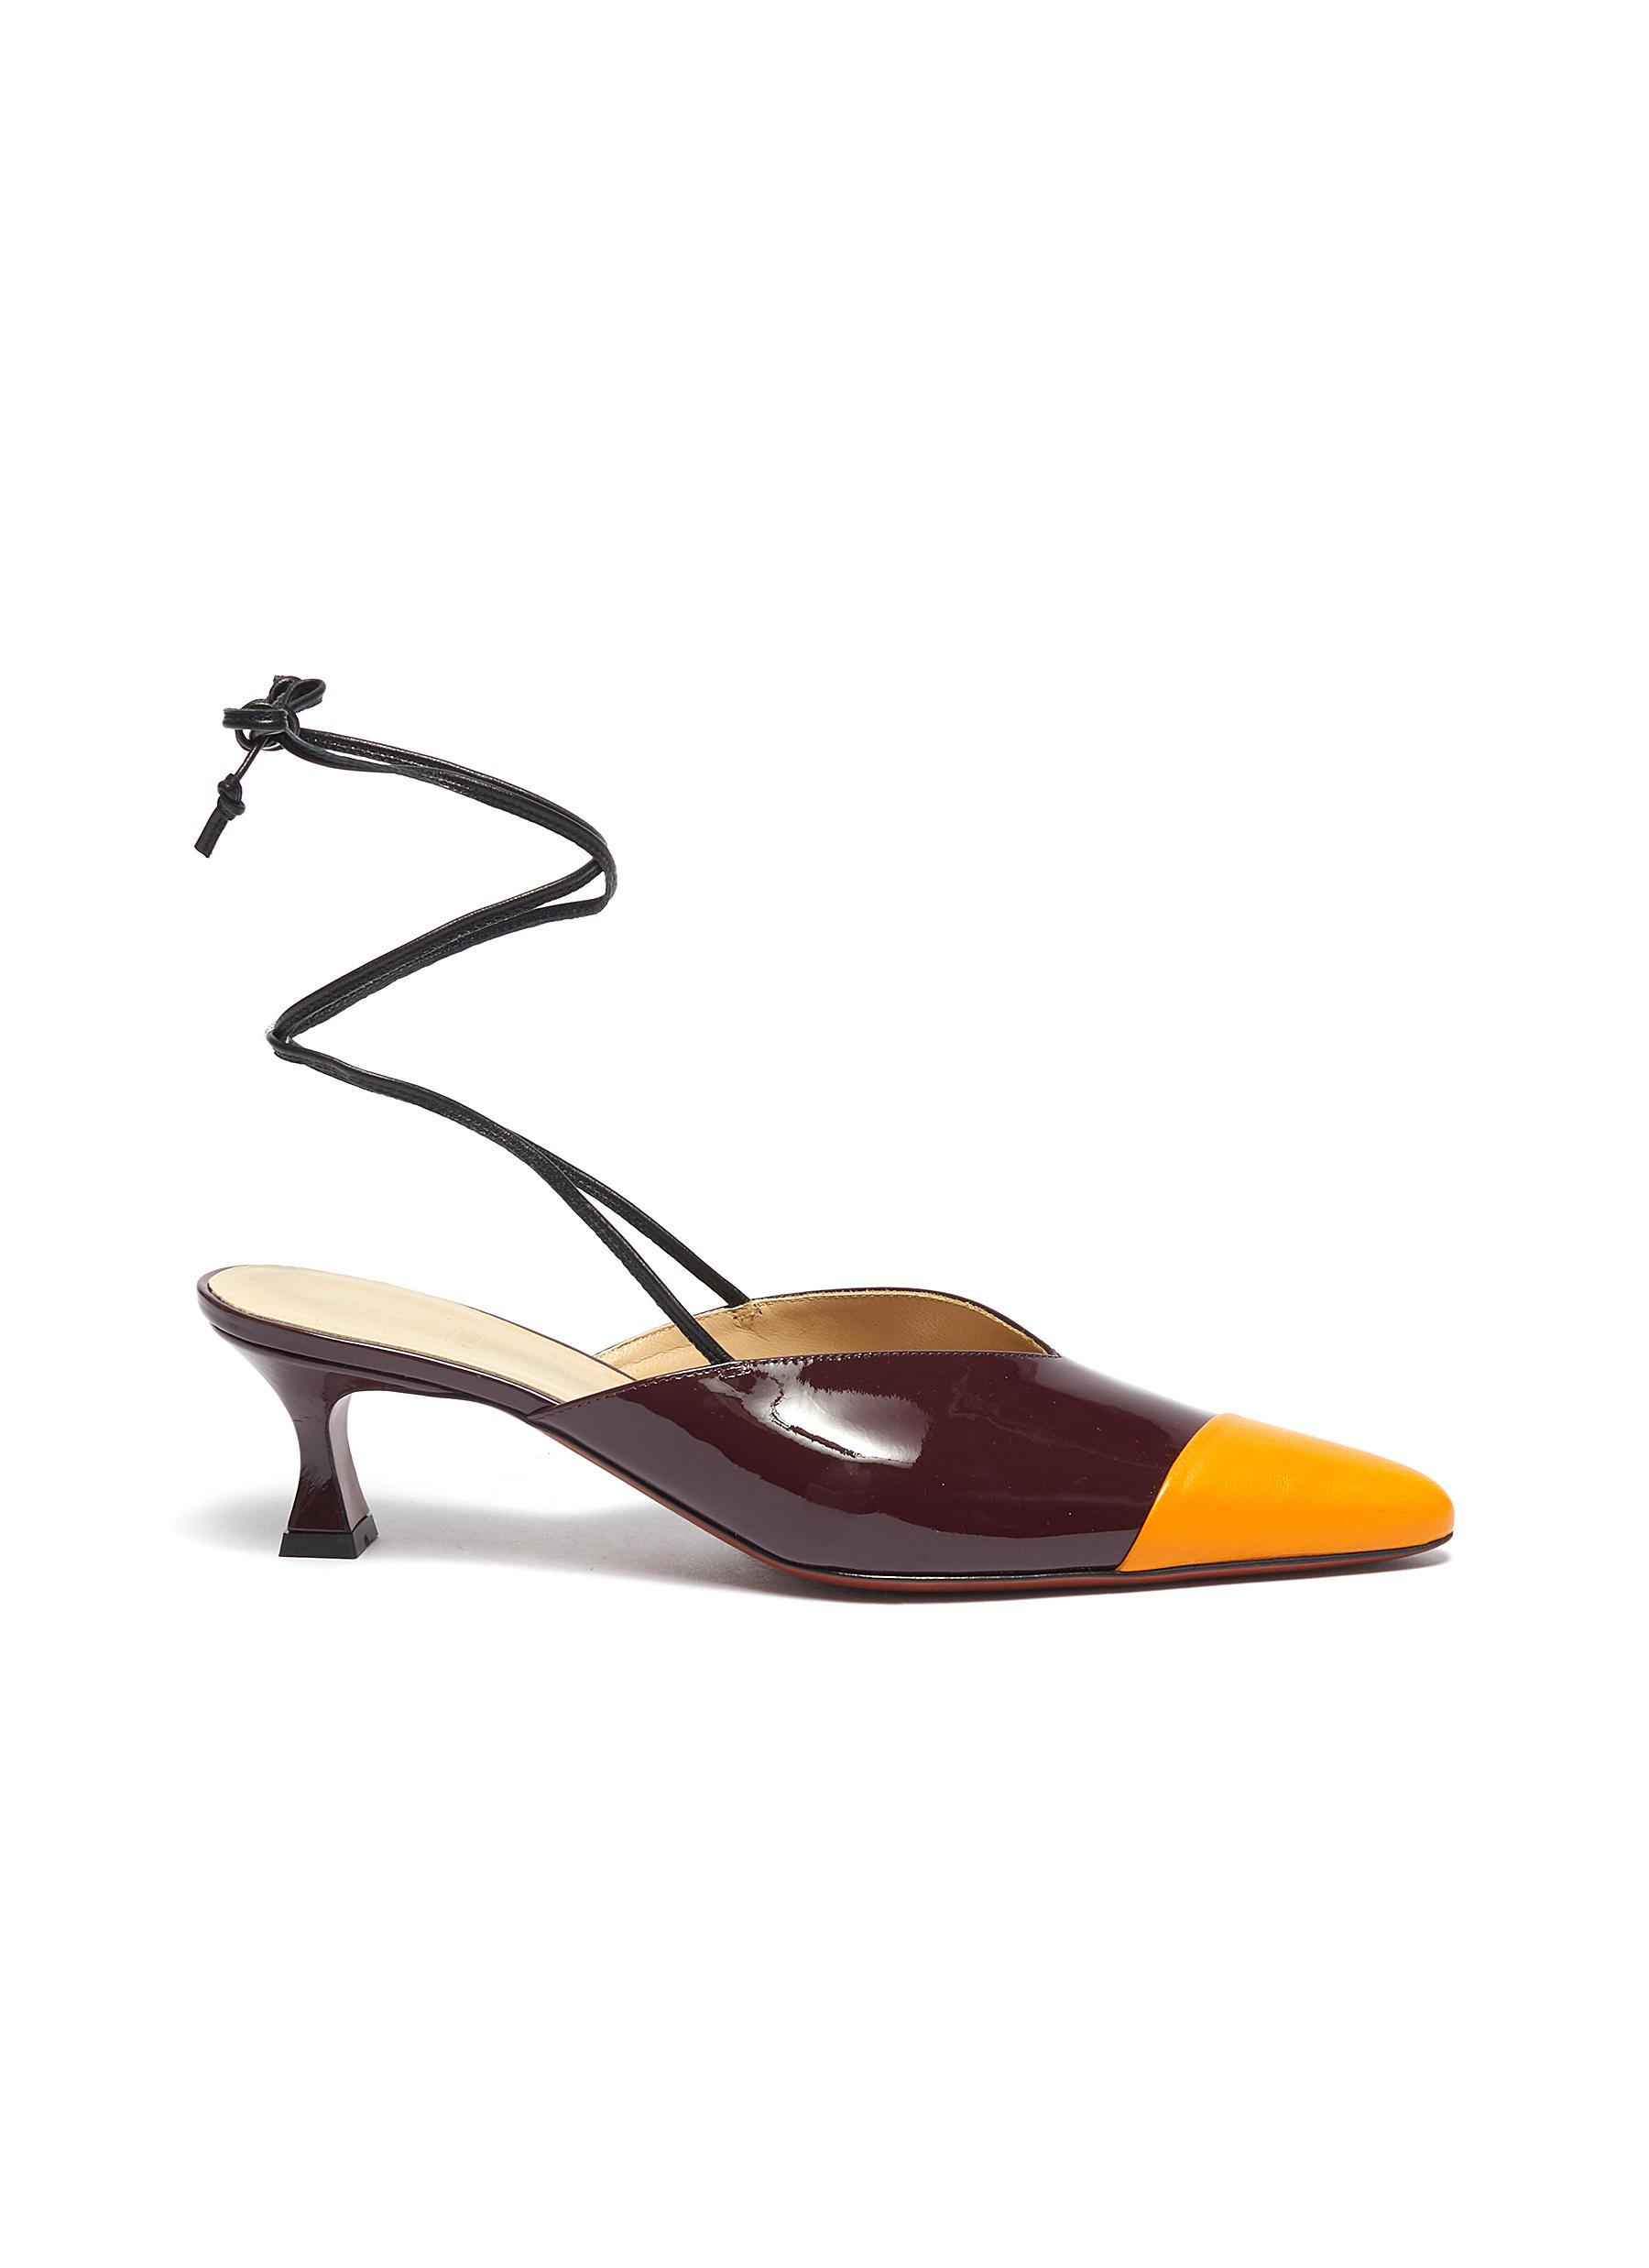 Wraparound ankle tie colourblock leather mules by Manu Atelier